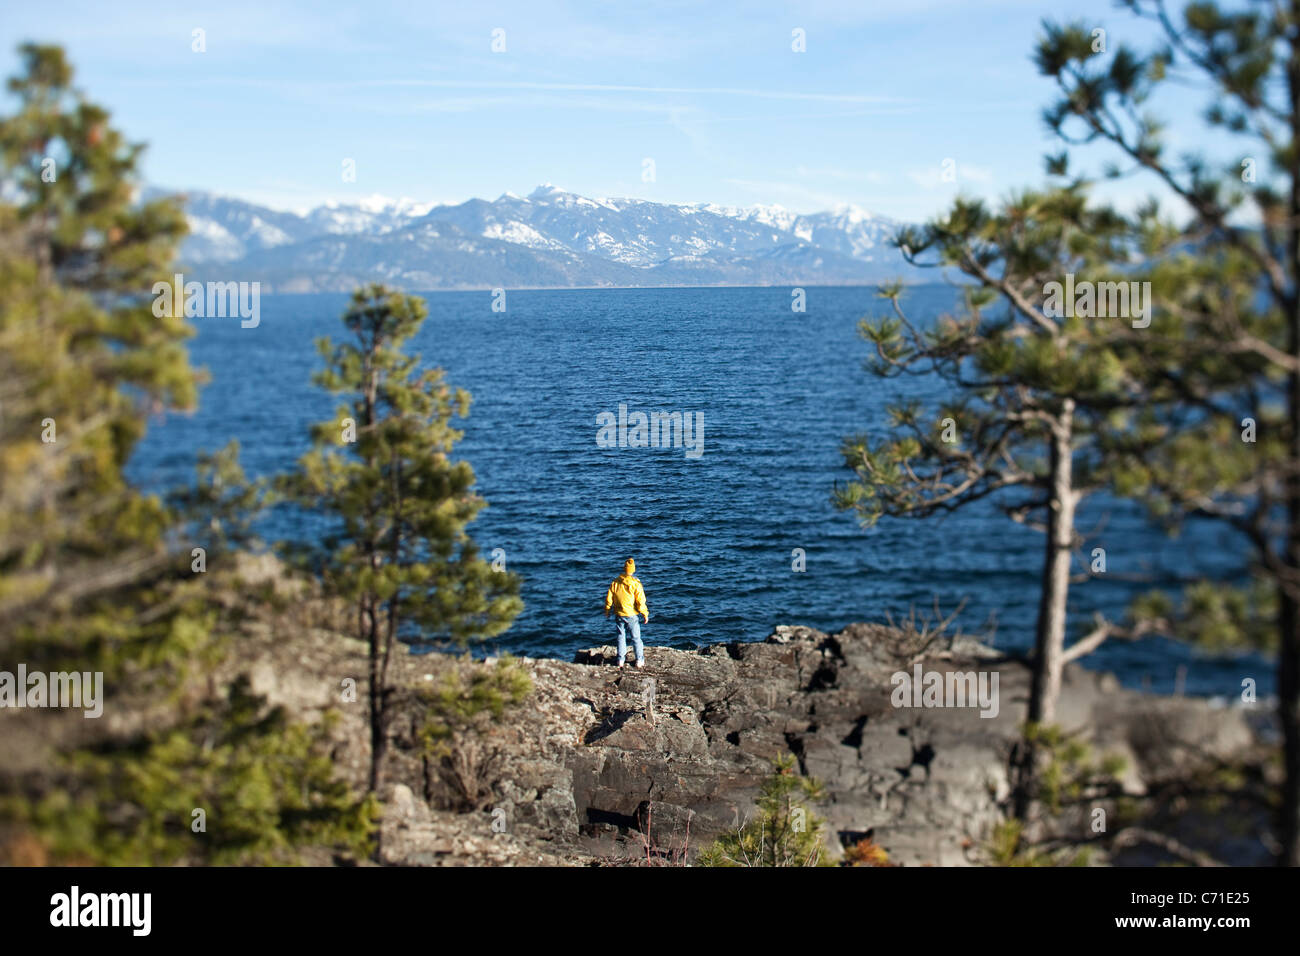 A athletic retired man stands at the edge of a cliff overlooking a beautiful lake in Idaho. - Stock Image